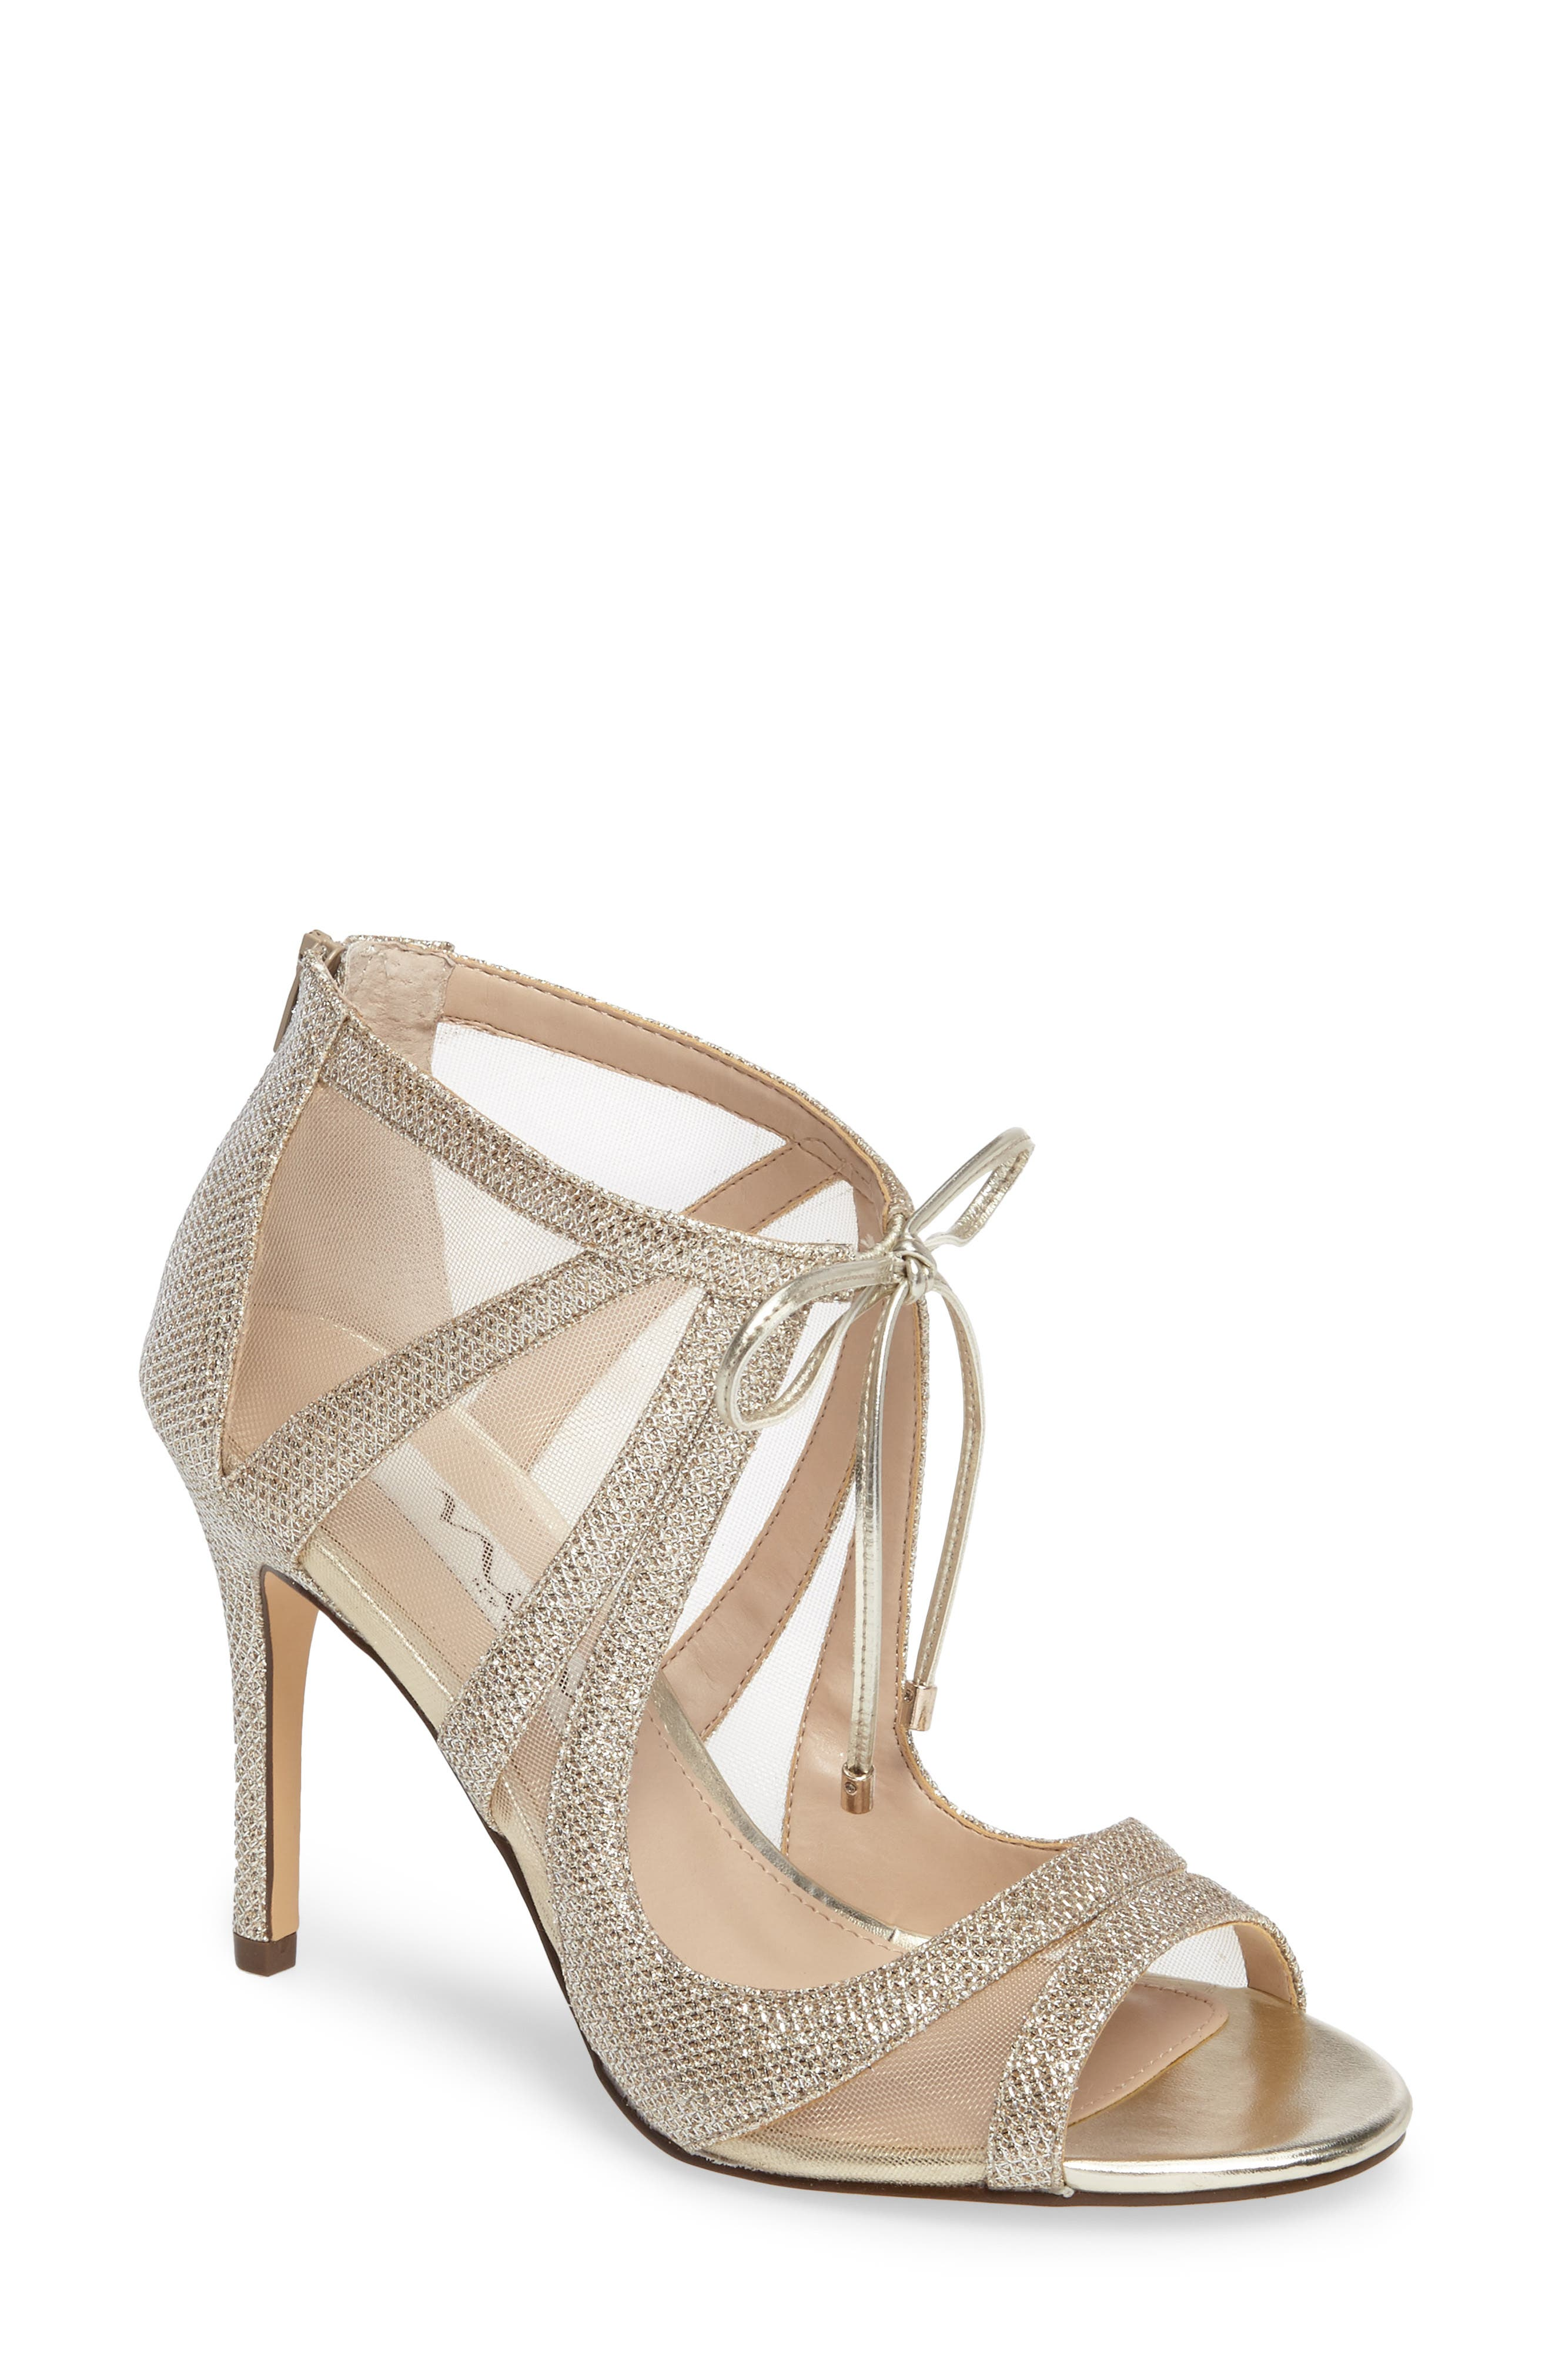 Nina Cherie Evening Sandals Women S Shoes In Soft Silver Fabric ...